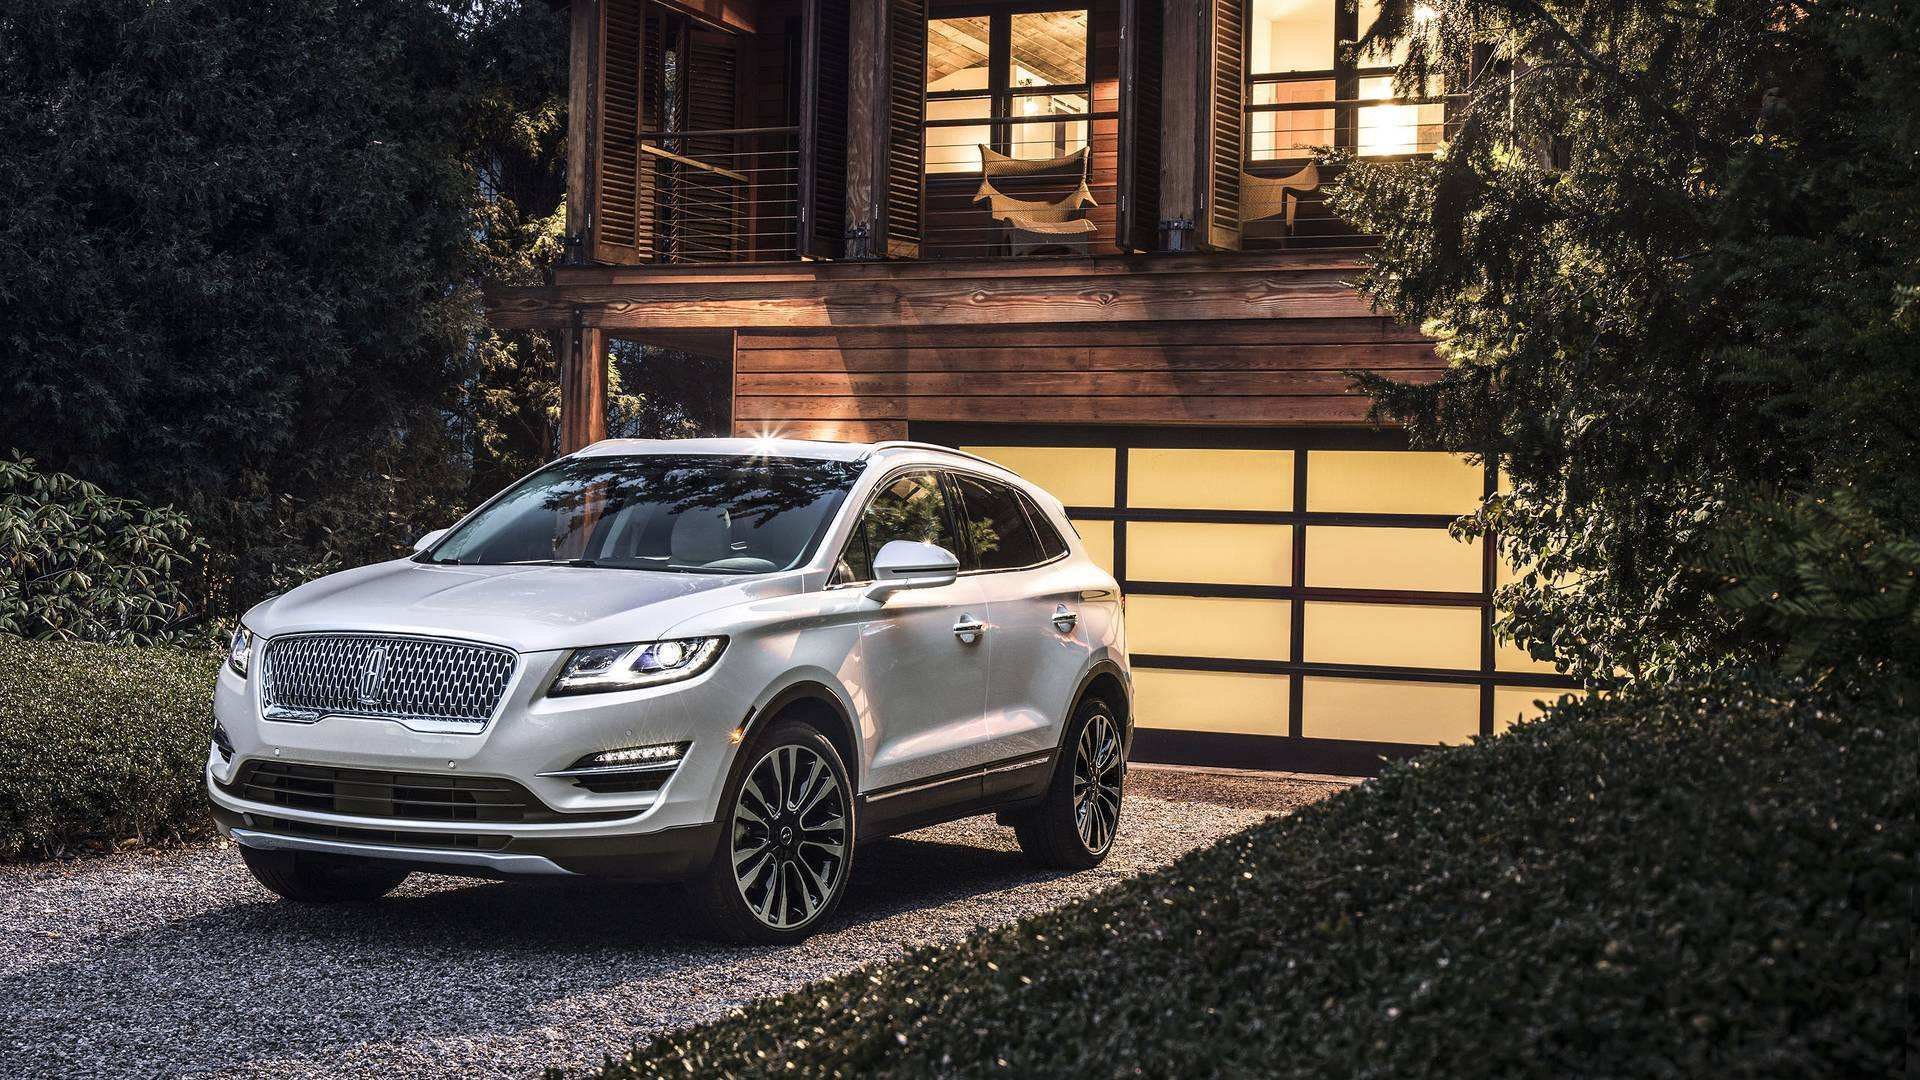 90 New 2020 Lincoln MKC Exterior